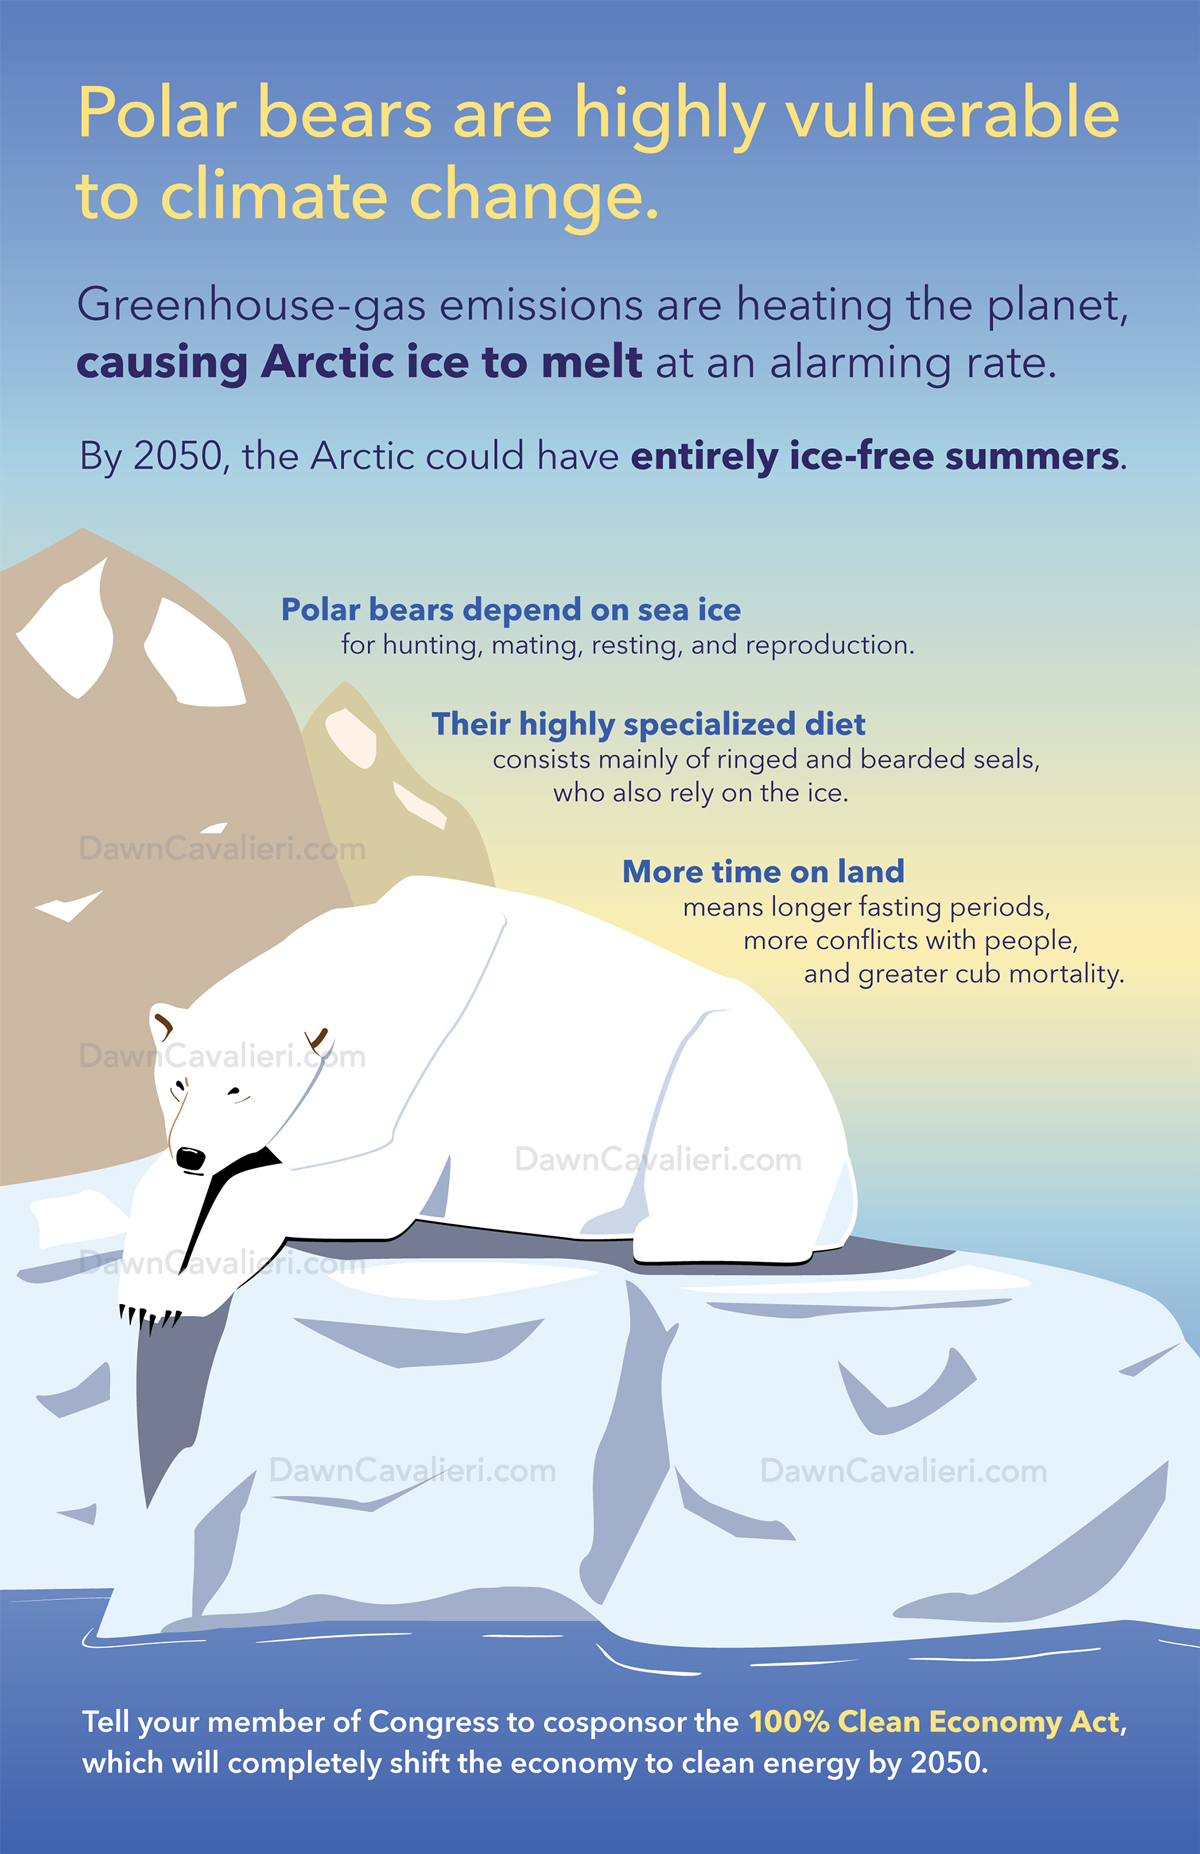 Poster about the effects of climate change on polar bears, by Dawn Cavalieri.